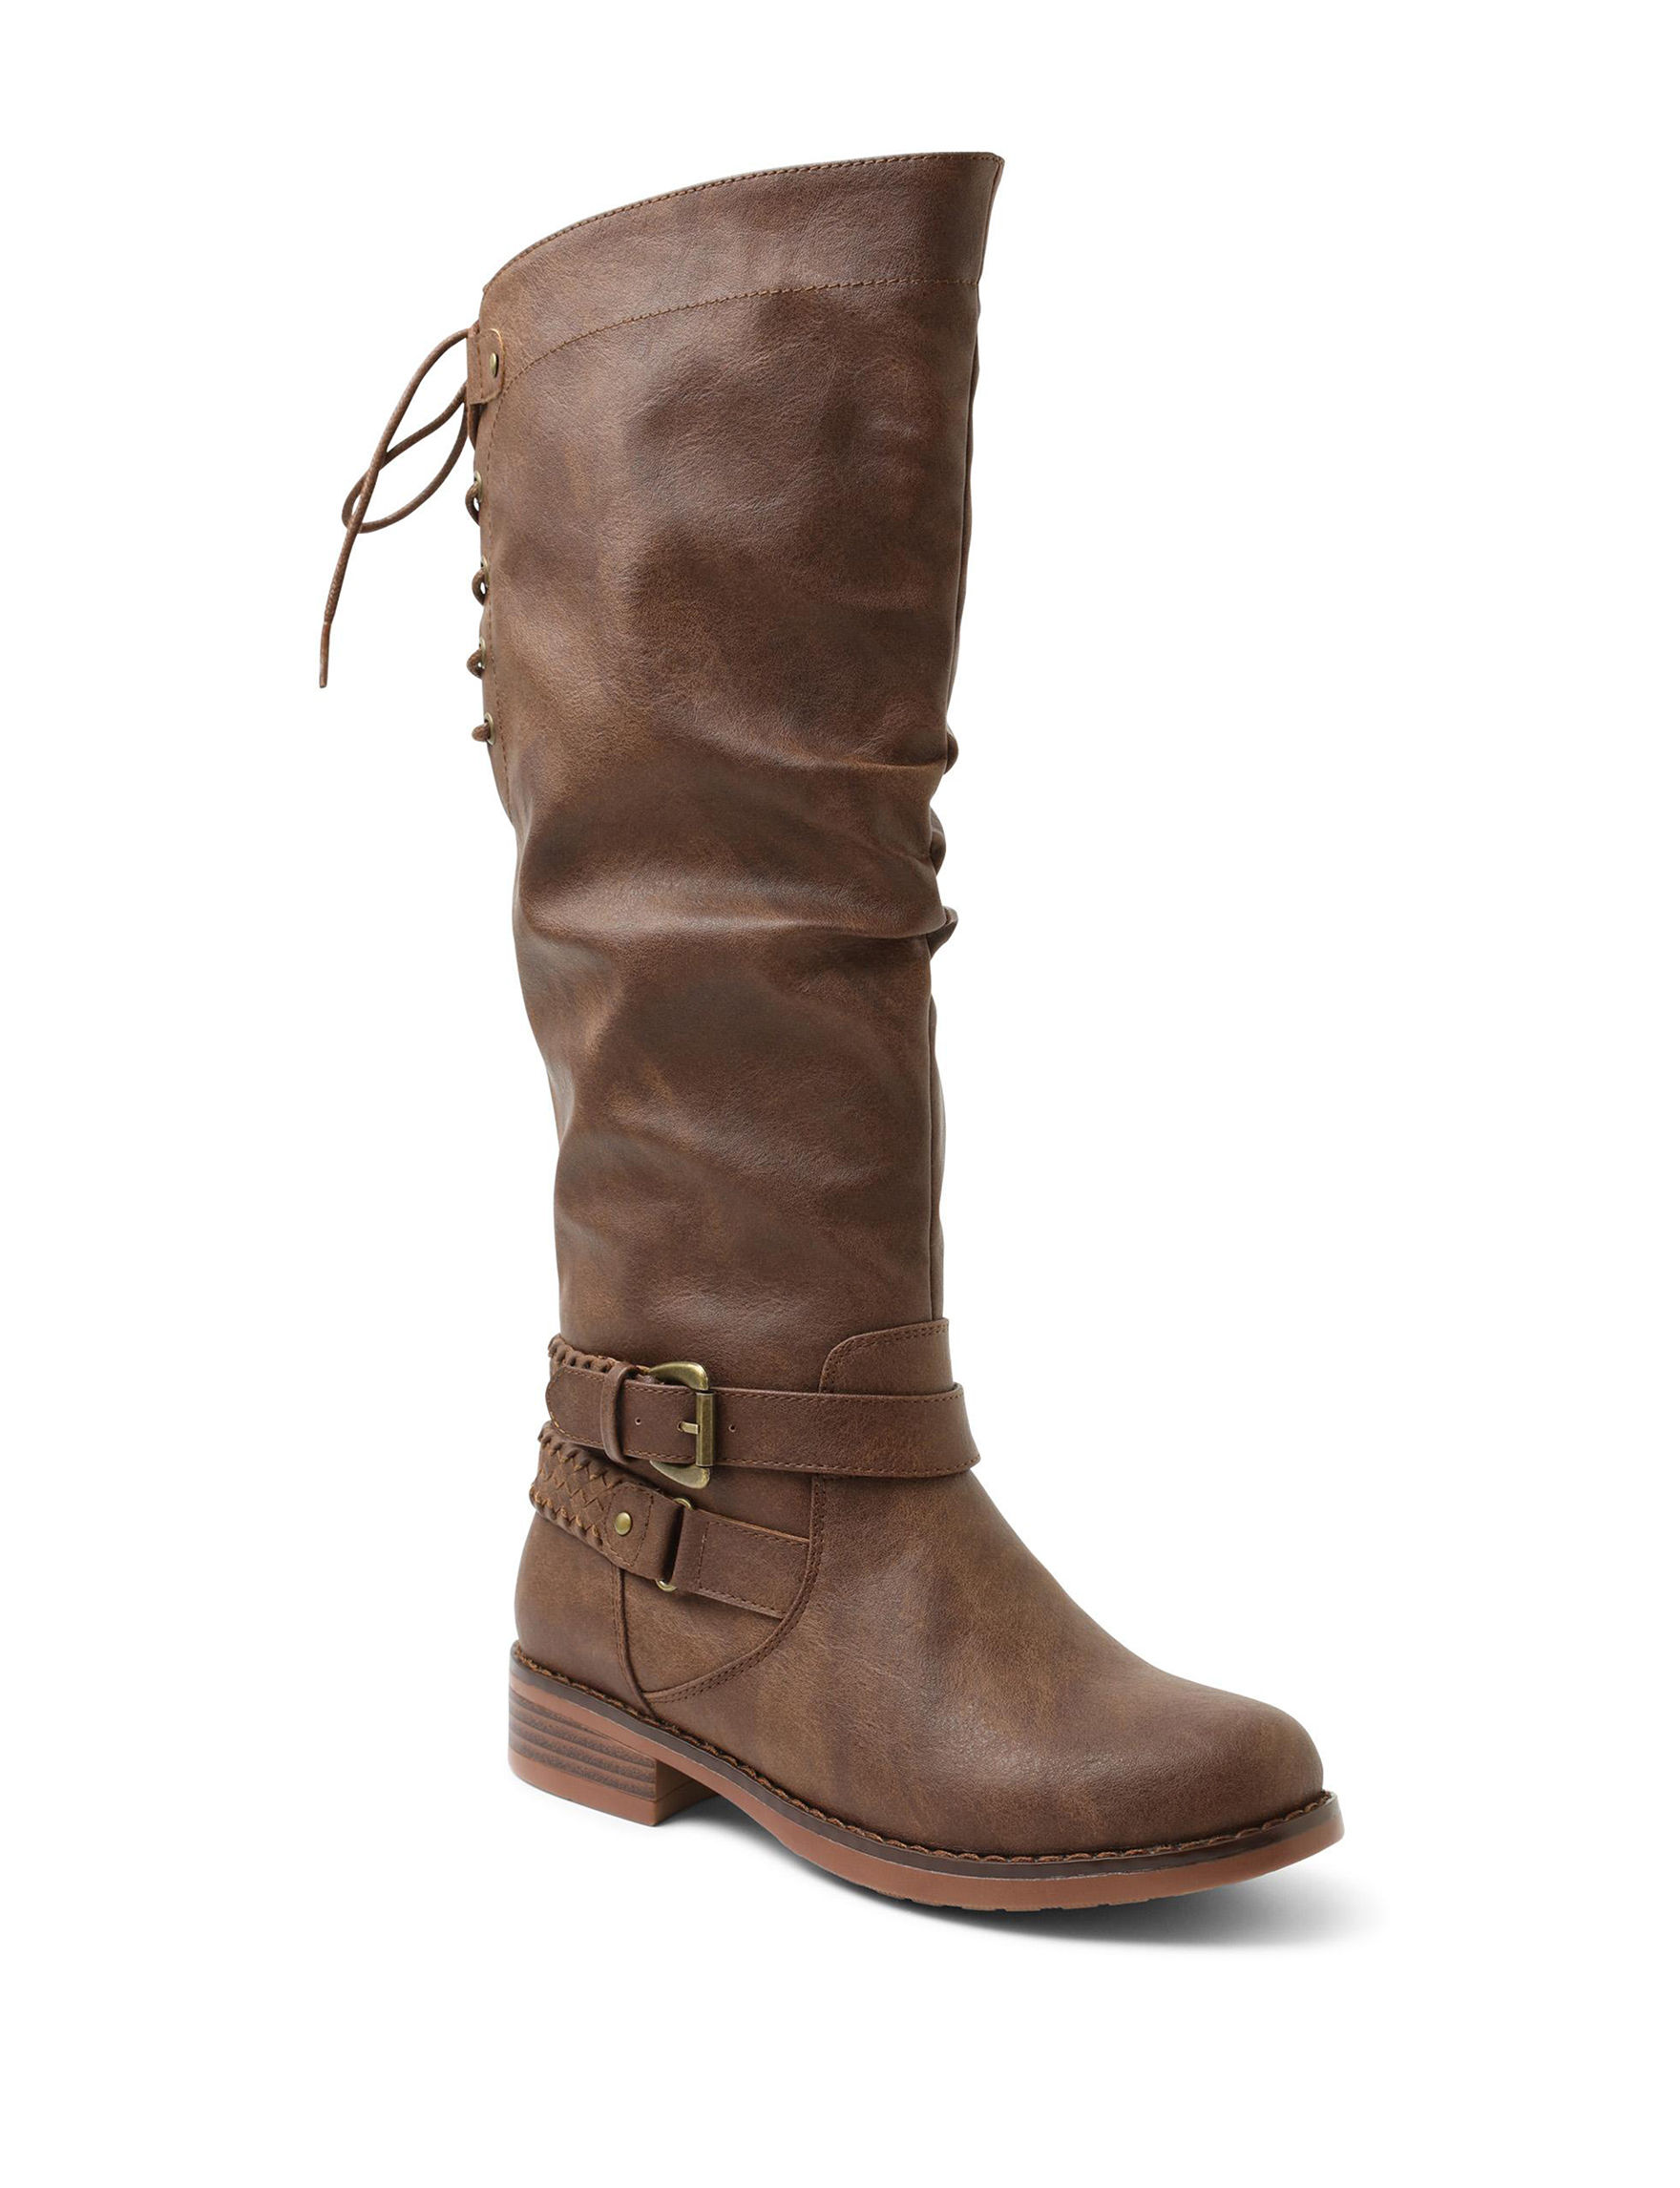 XOXO Brown Riding Boots